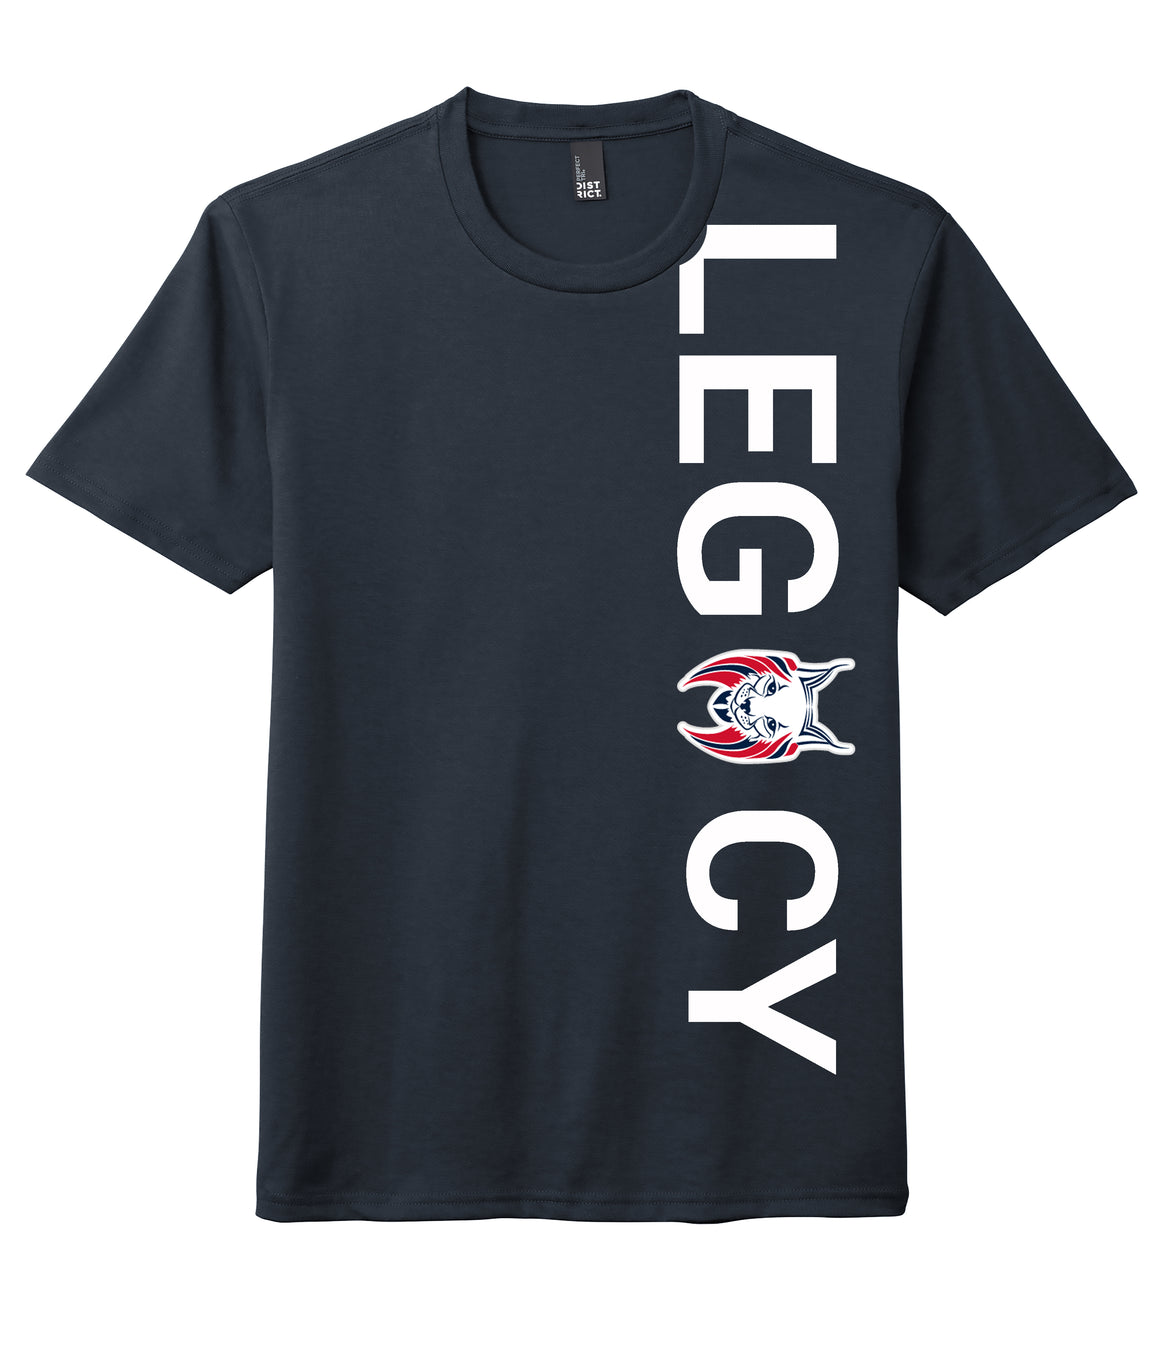 Legacy Traditional School Avondale - Glitter Shirt